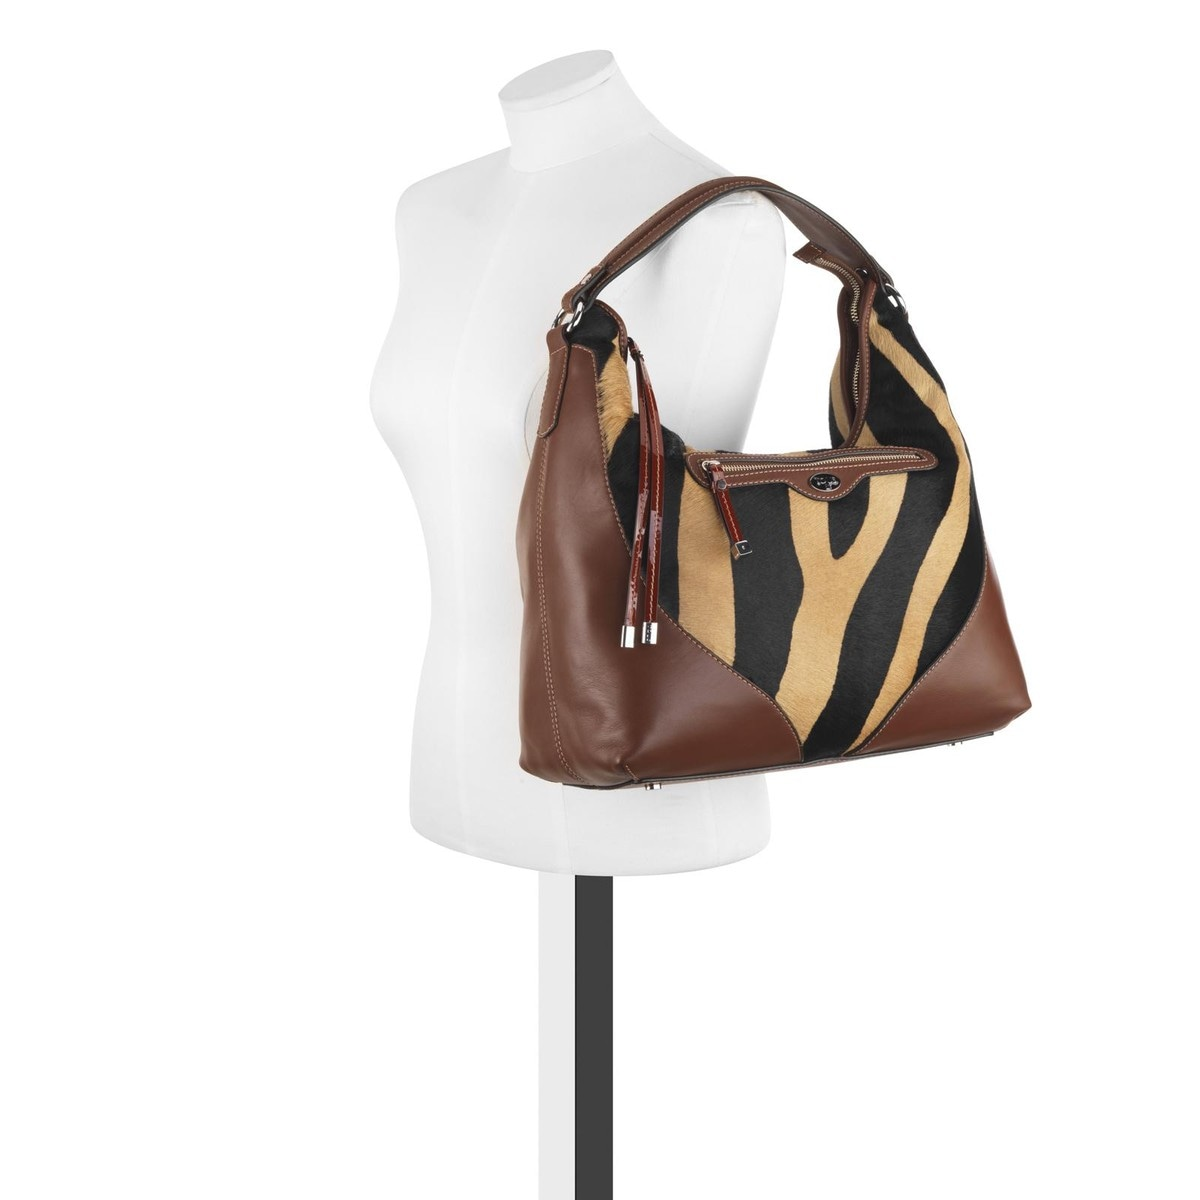 Zebra-cognac colored Leather Rania One Shoulder bag